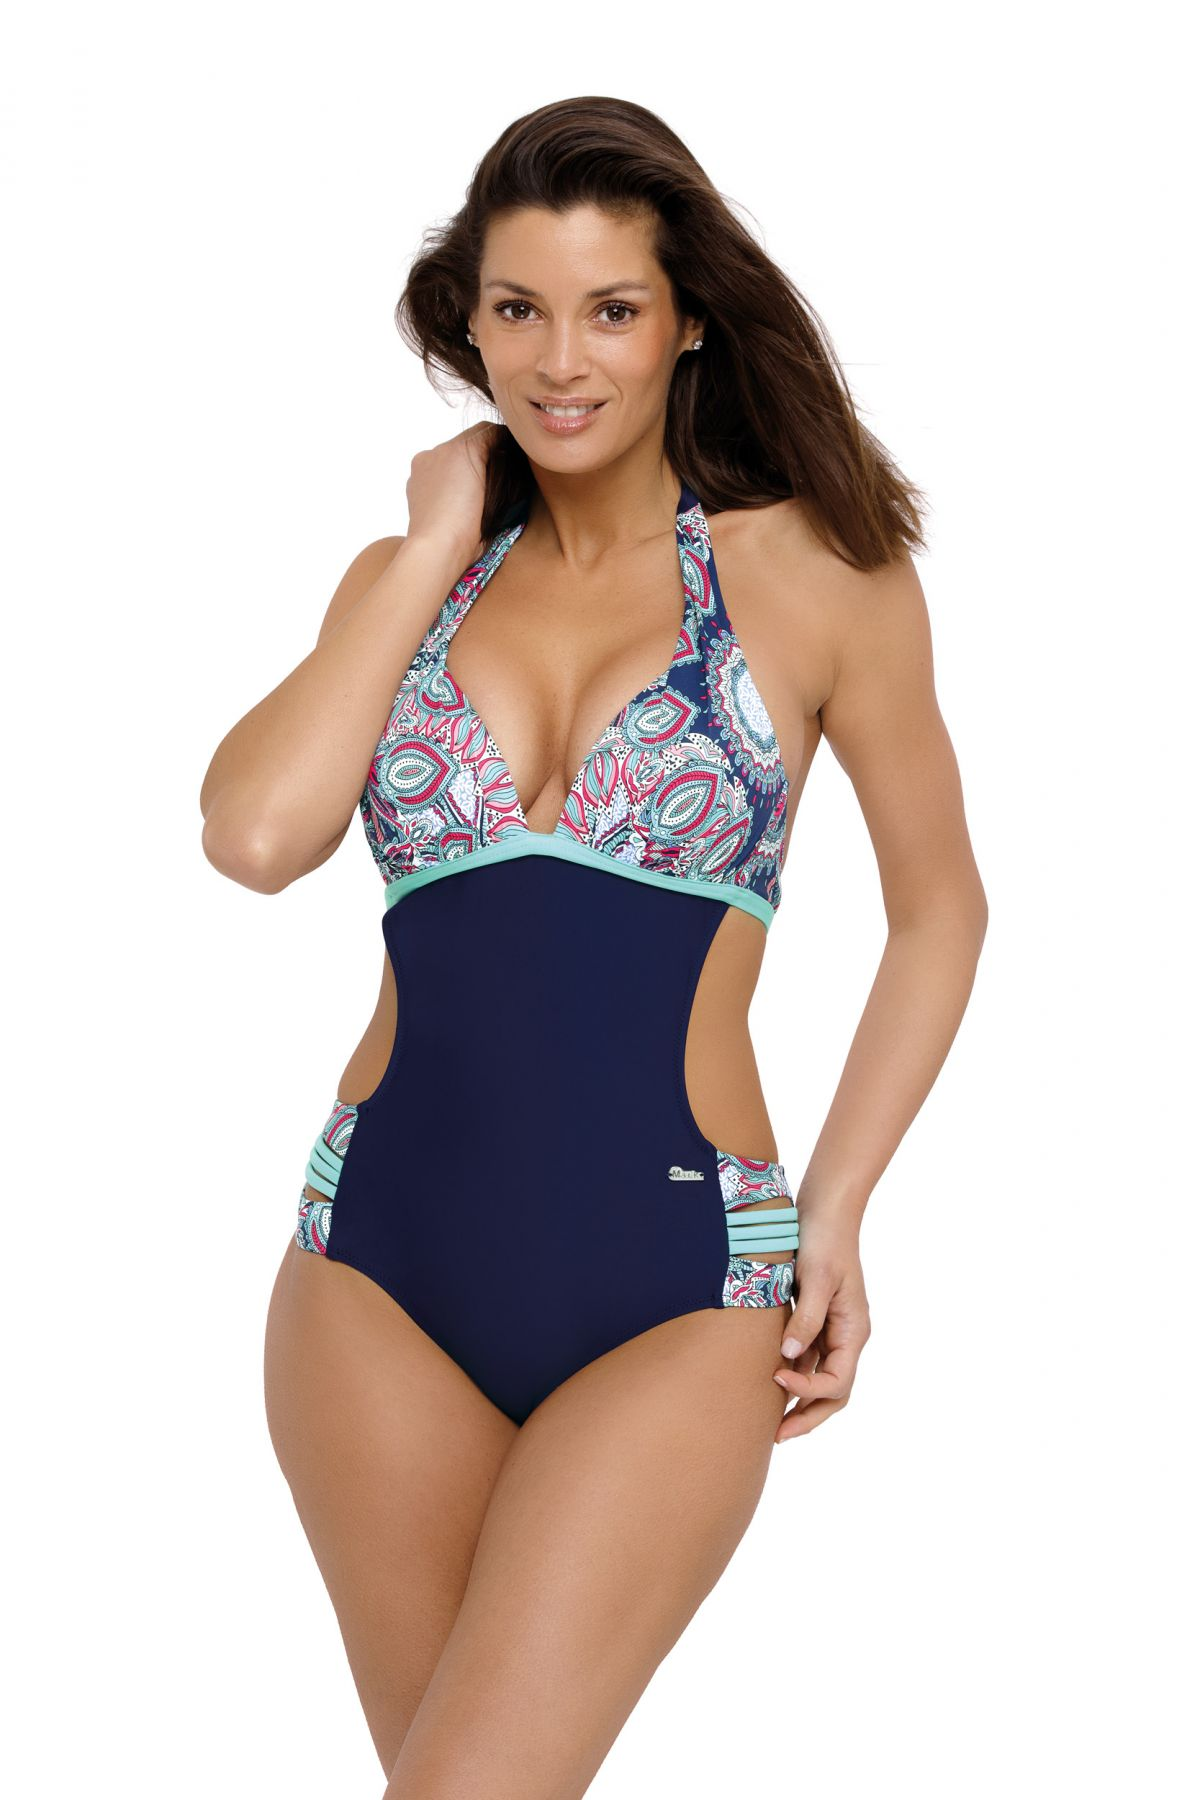 Florence Cosmo-Frozen M-507 (2)-DARBLU